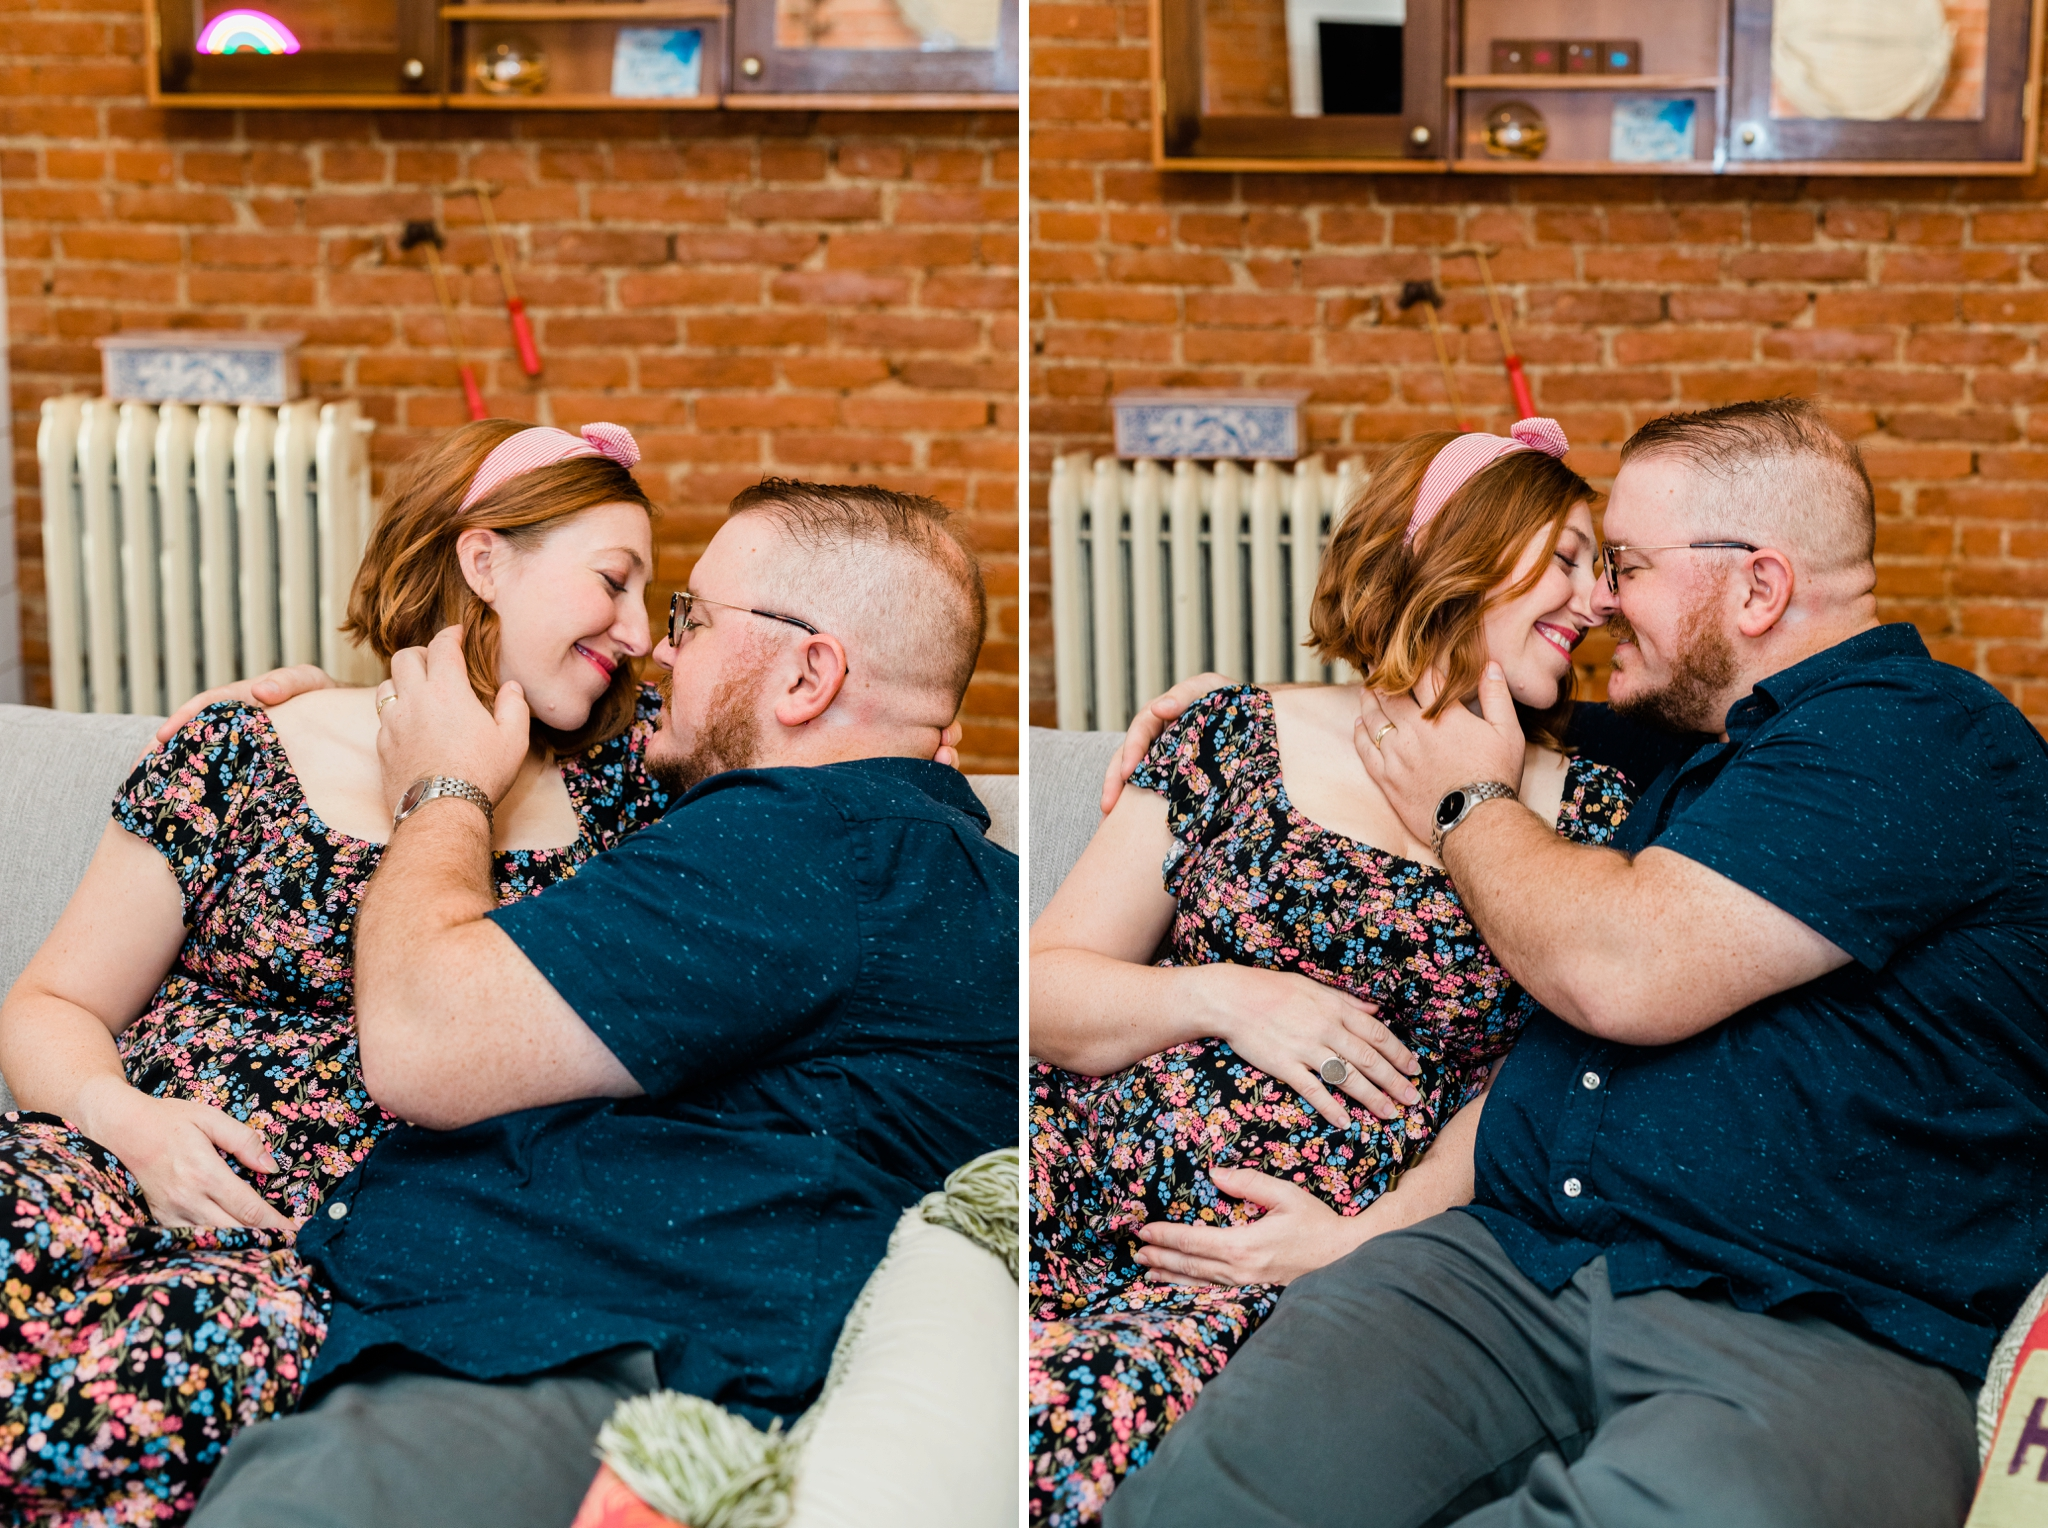 Emily Grace Photography, Lancaster PA Maternity Photographer, Lancaster City In-Home Maternity Photos, Maternity Session with Dogs